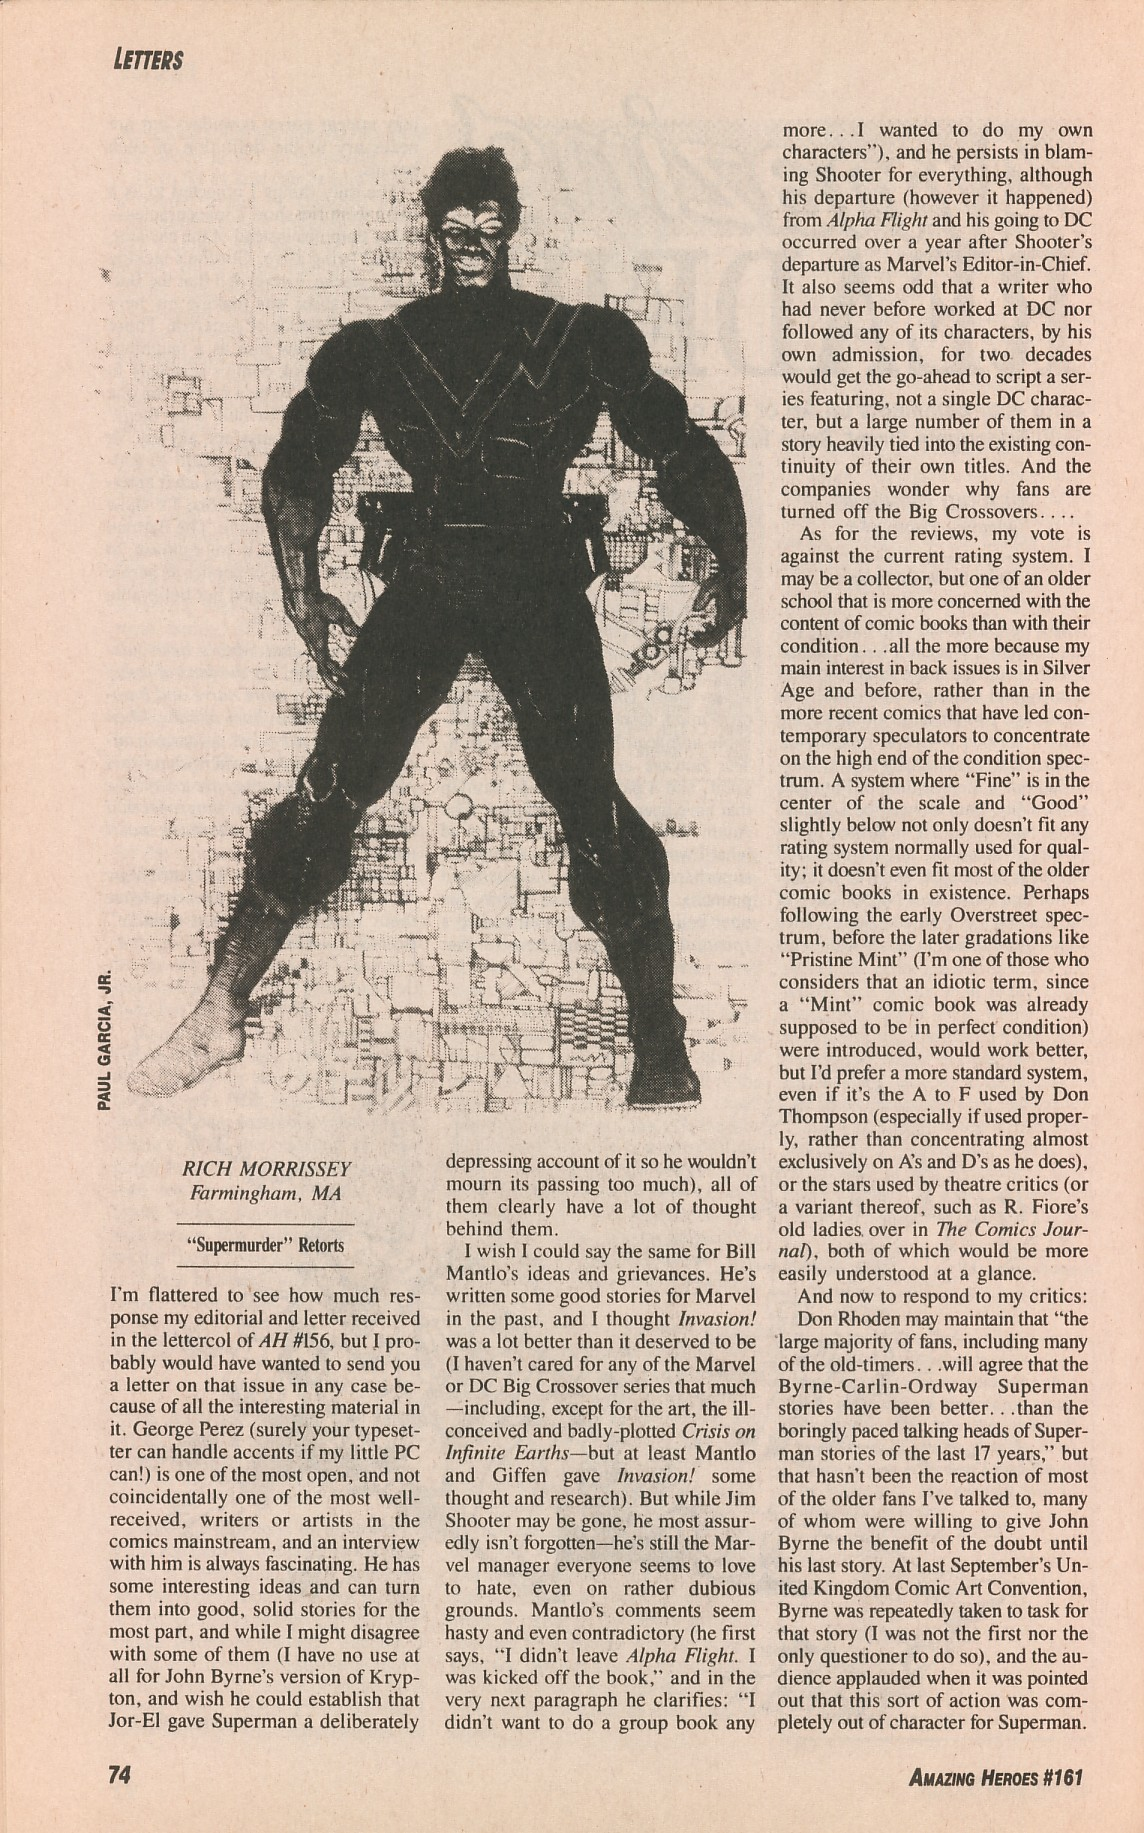 Read online Amazing Heroes comic -  Issue #161 - 74